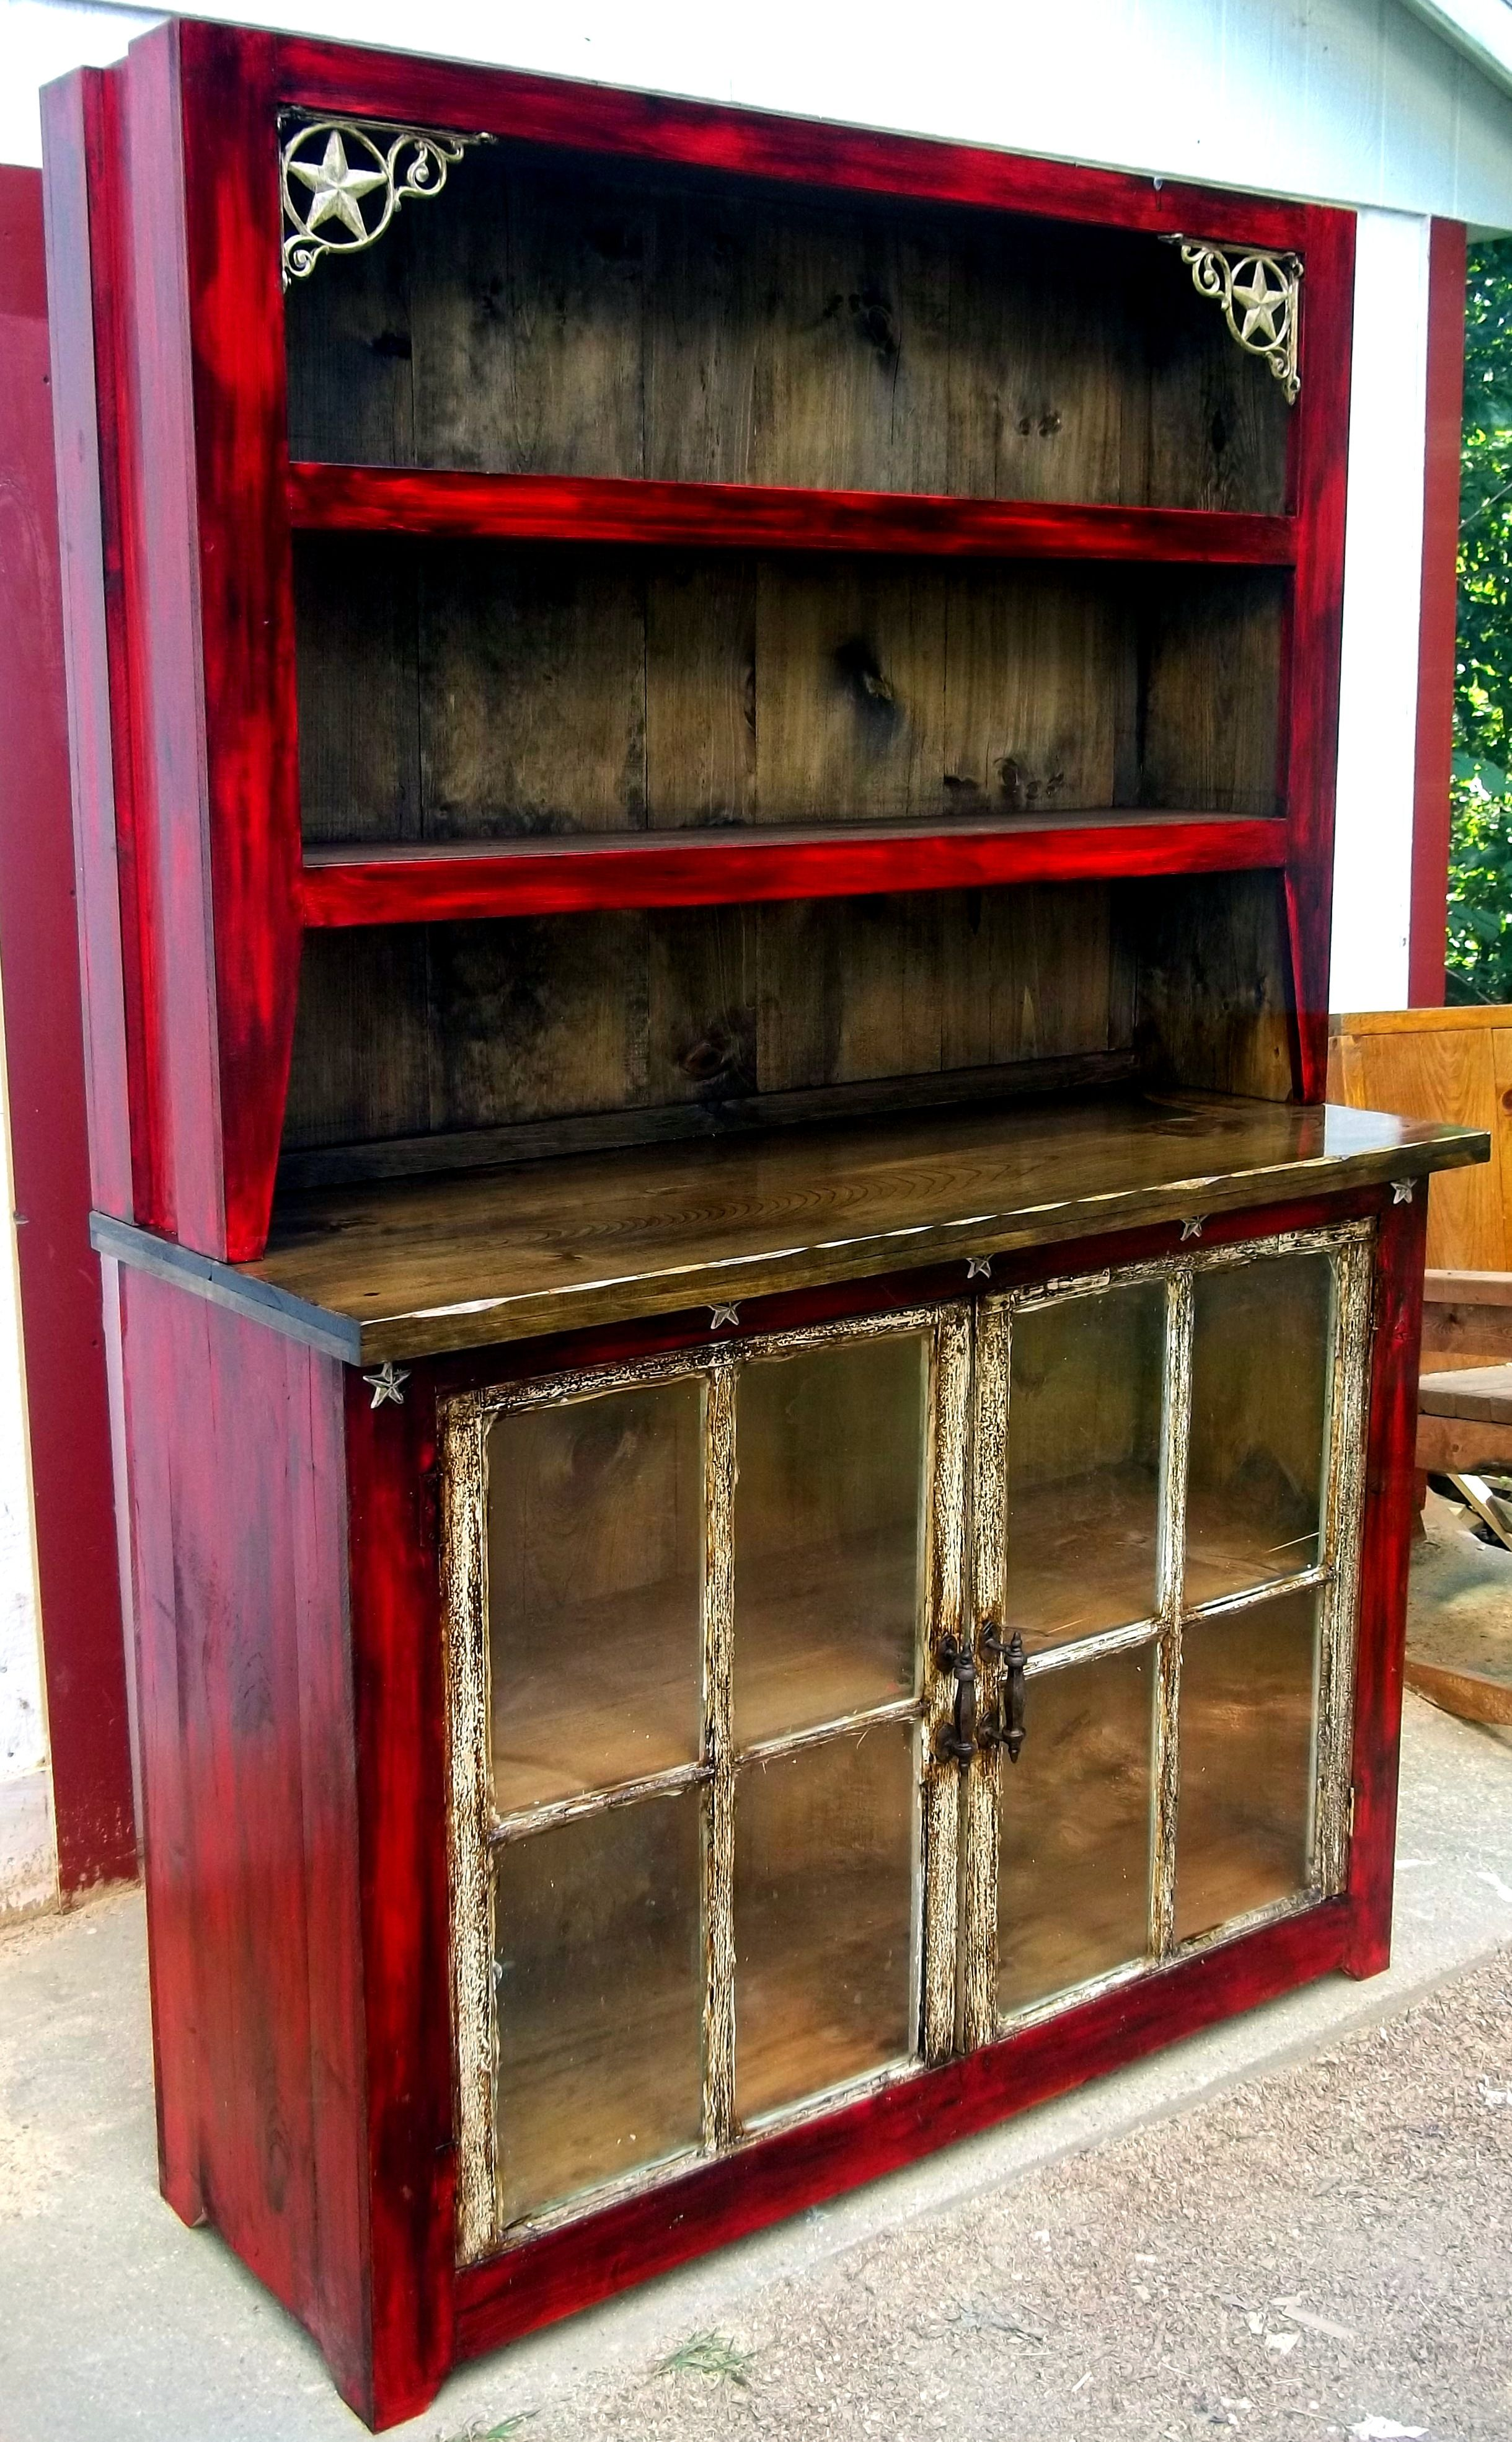 Etonnant Handmade Rustic Furniture, Hidden Compartment Furniture, Secret Gun  Compartmentu2026